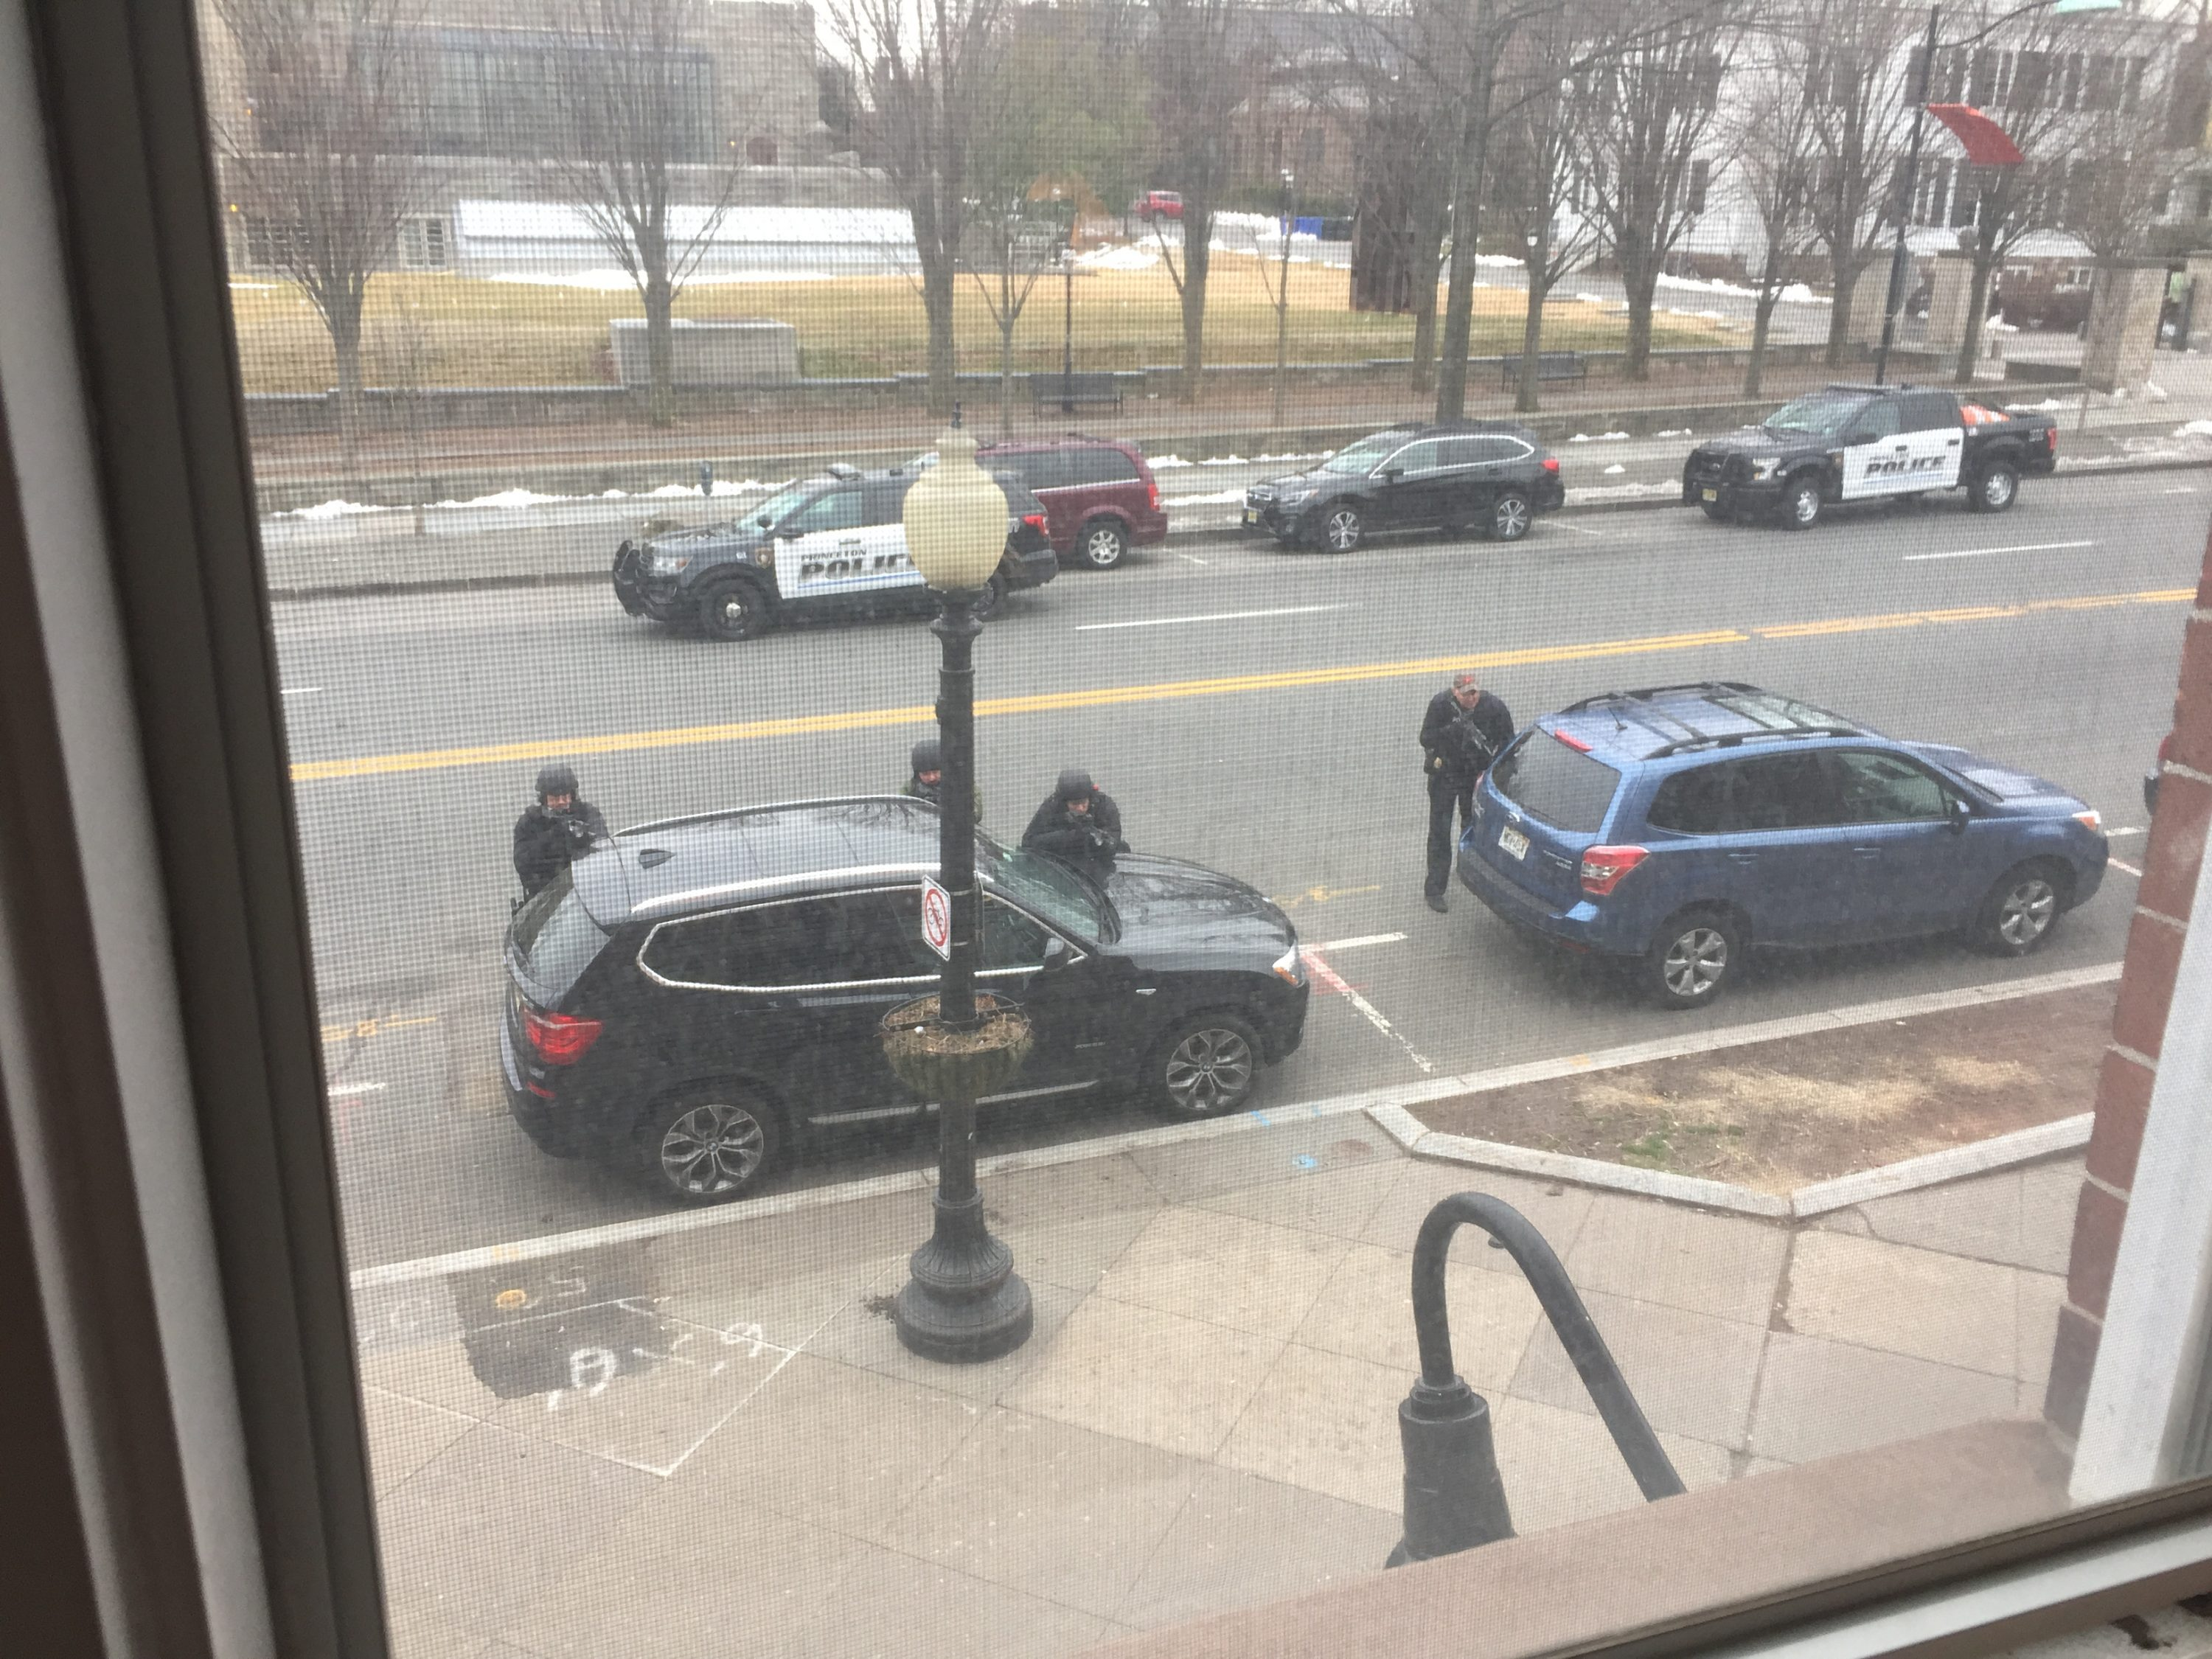 The view from the second floor, above the Panera, as police show up on the scene.